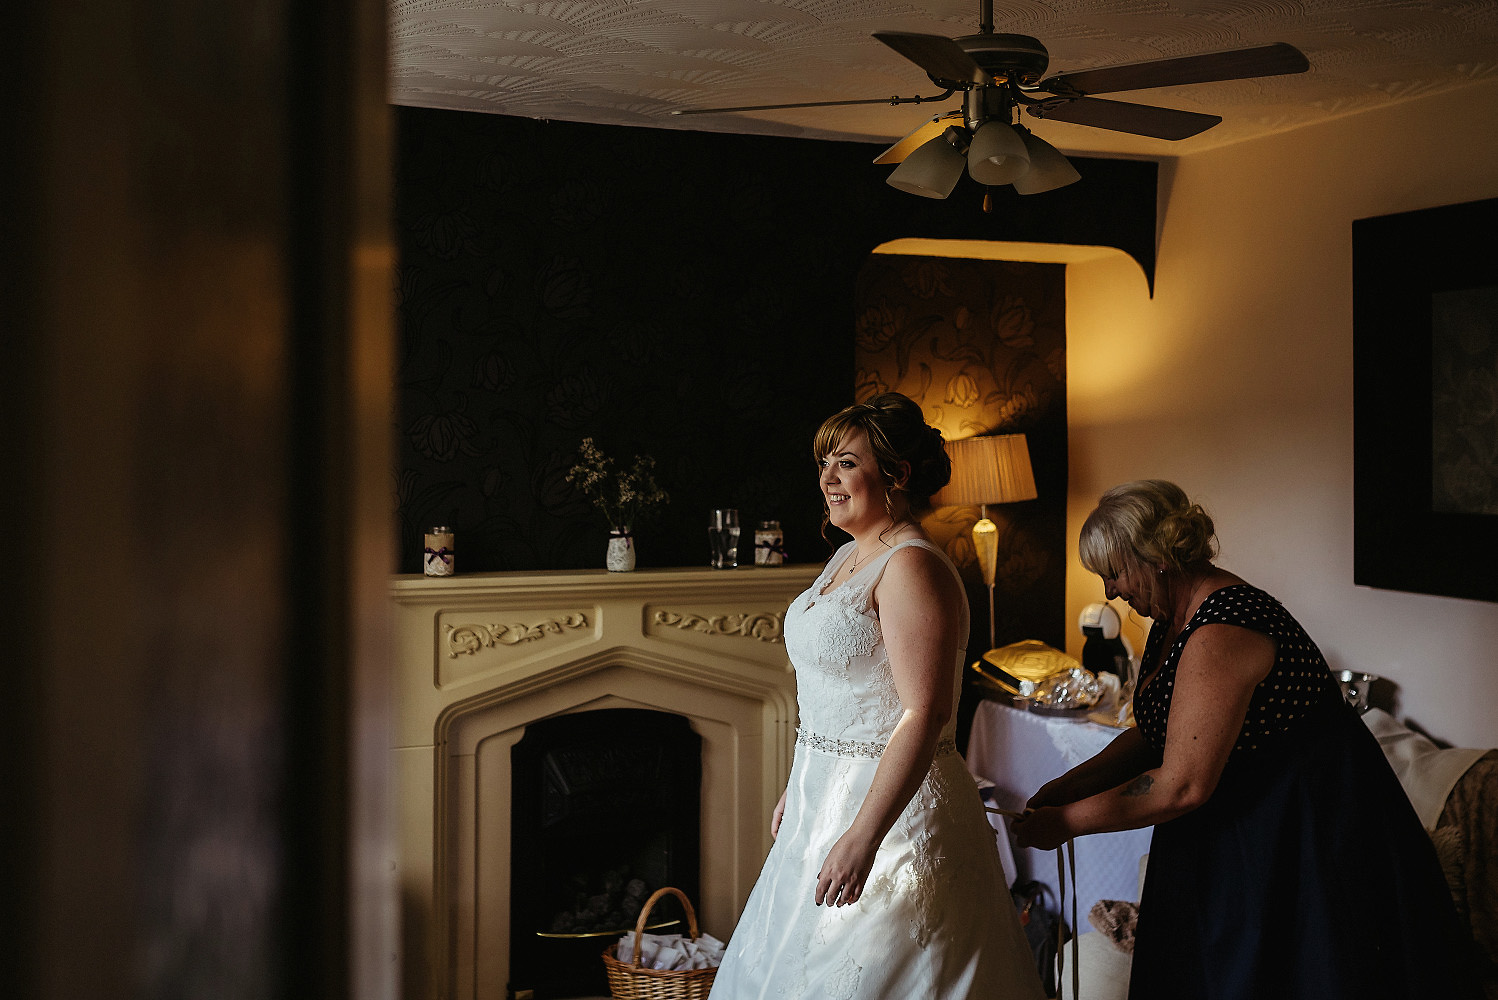 mum helps bride into dress